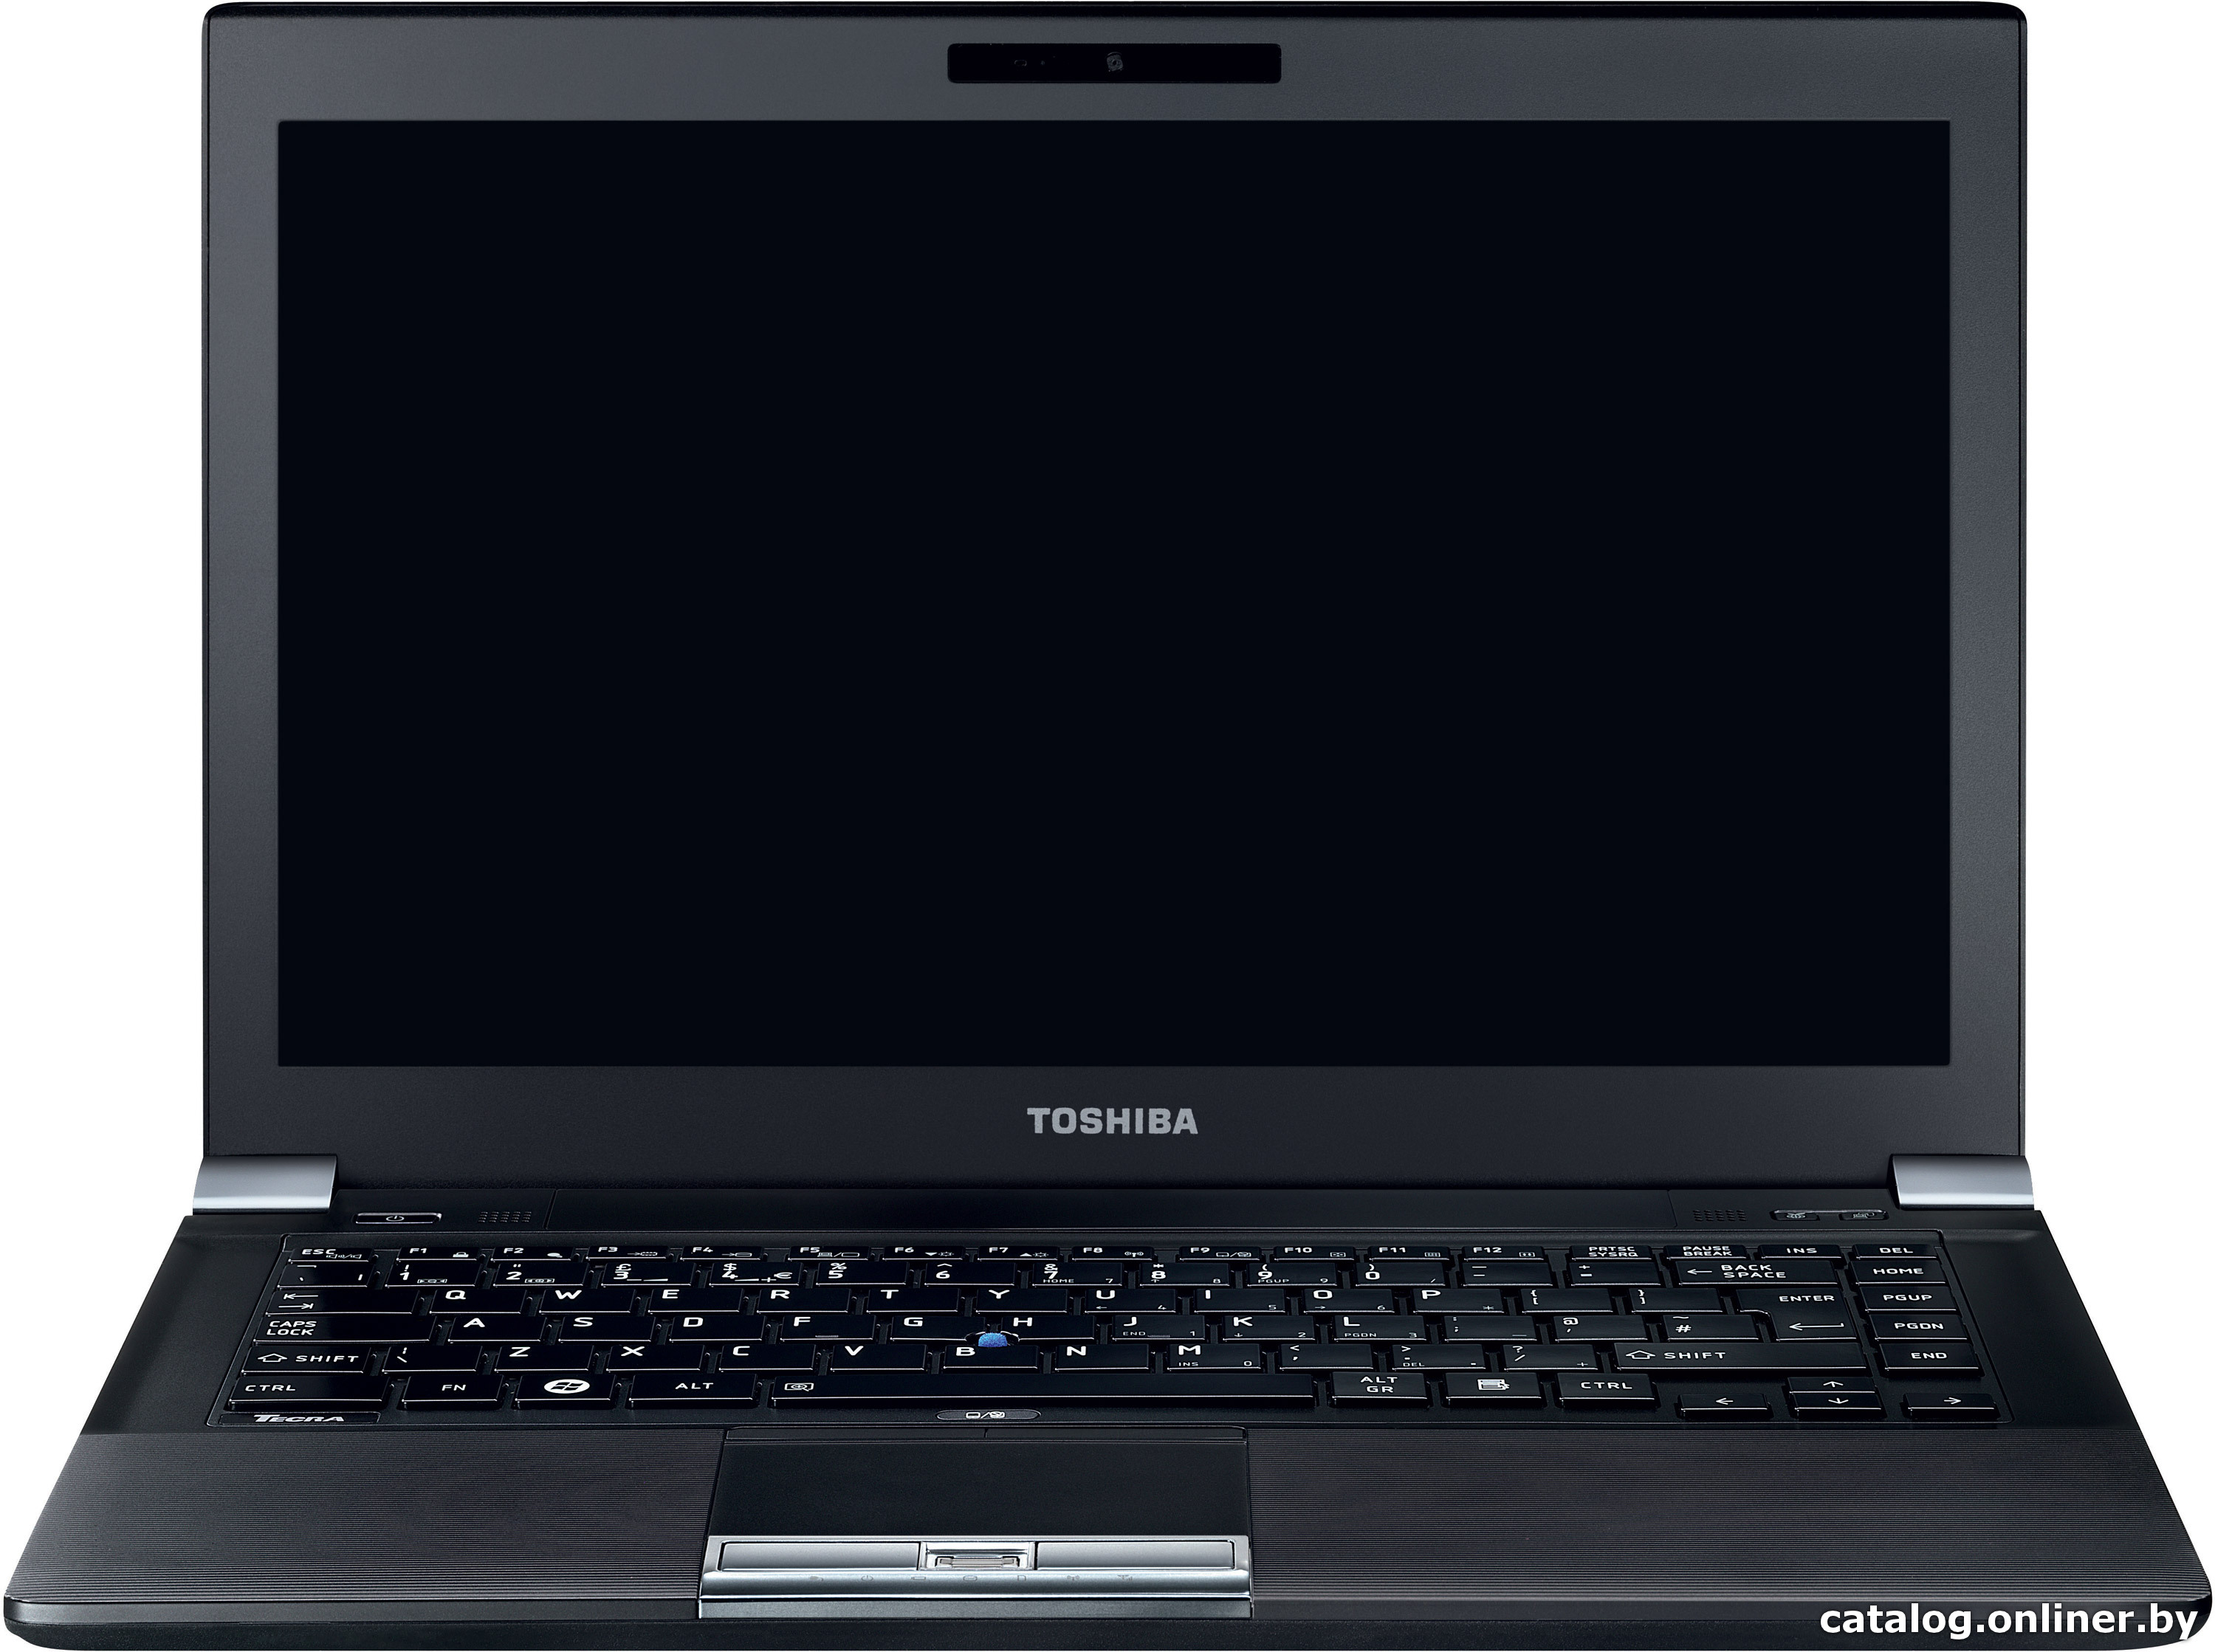 TOSHIBA PORTEGE R940-B SYSTEM WINDOWS 8 X64 DRIVER DOWNLOAD